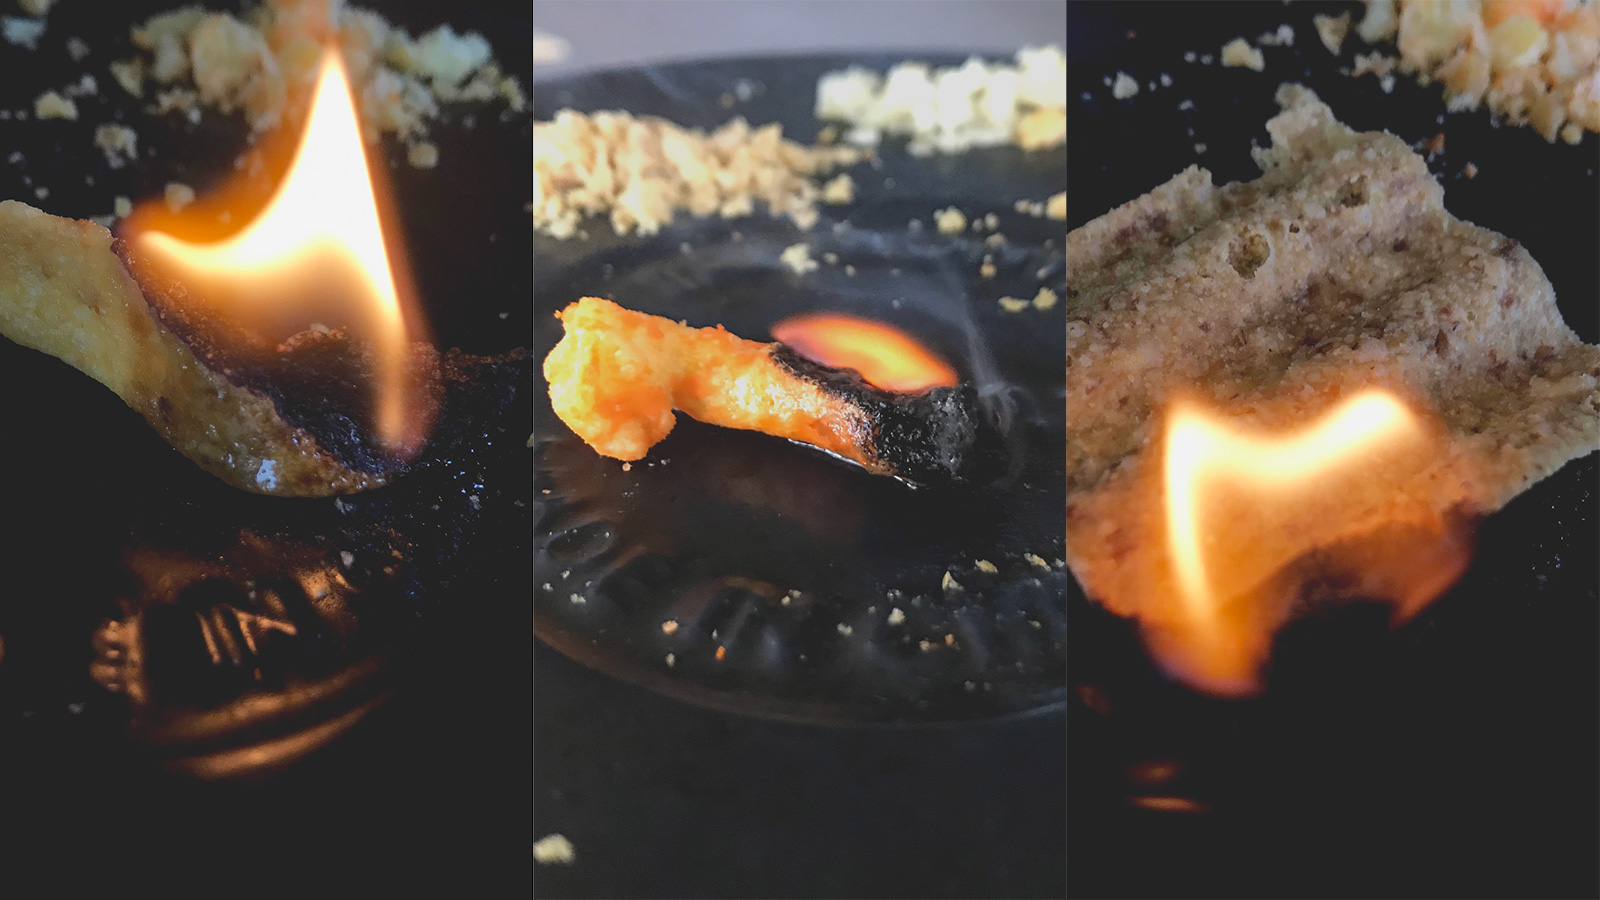 Testing Fritos, Cheetos, and Sun Chips as fire starting tinder.